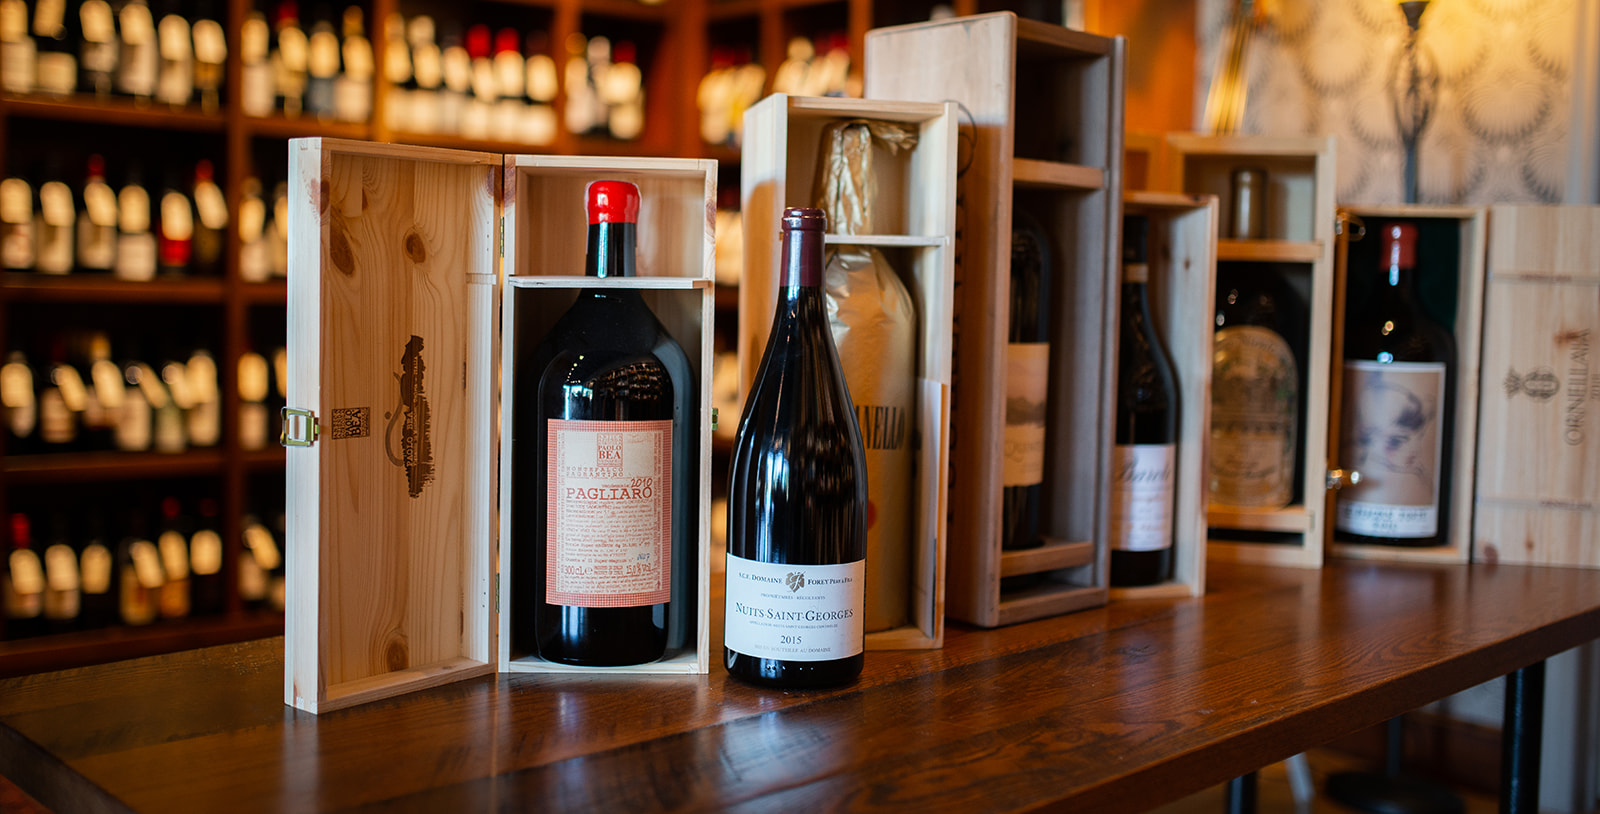 <p><strong>CELLAR MANAGEMENT</strong><i>READ MORE →</i></p>